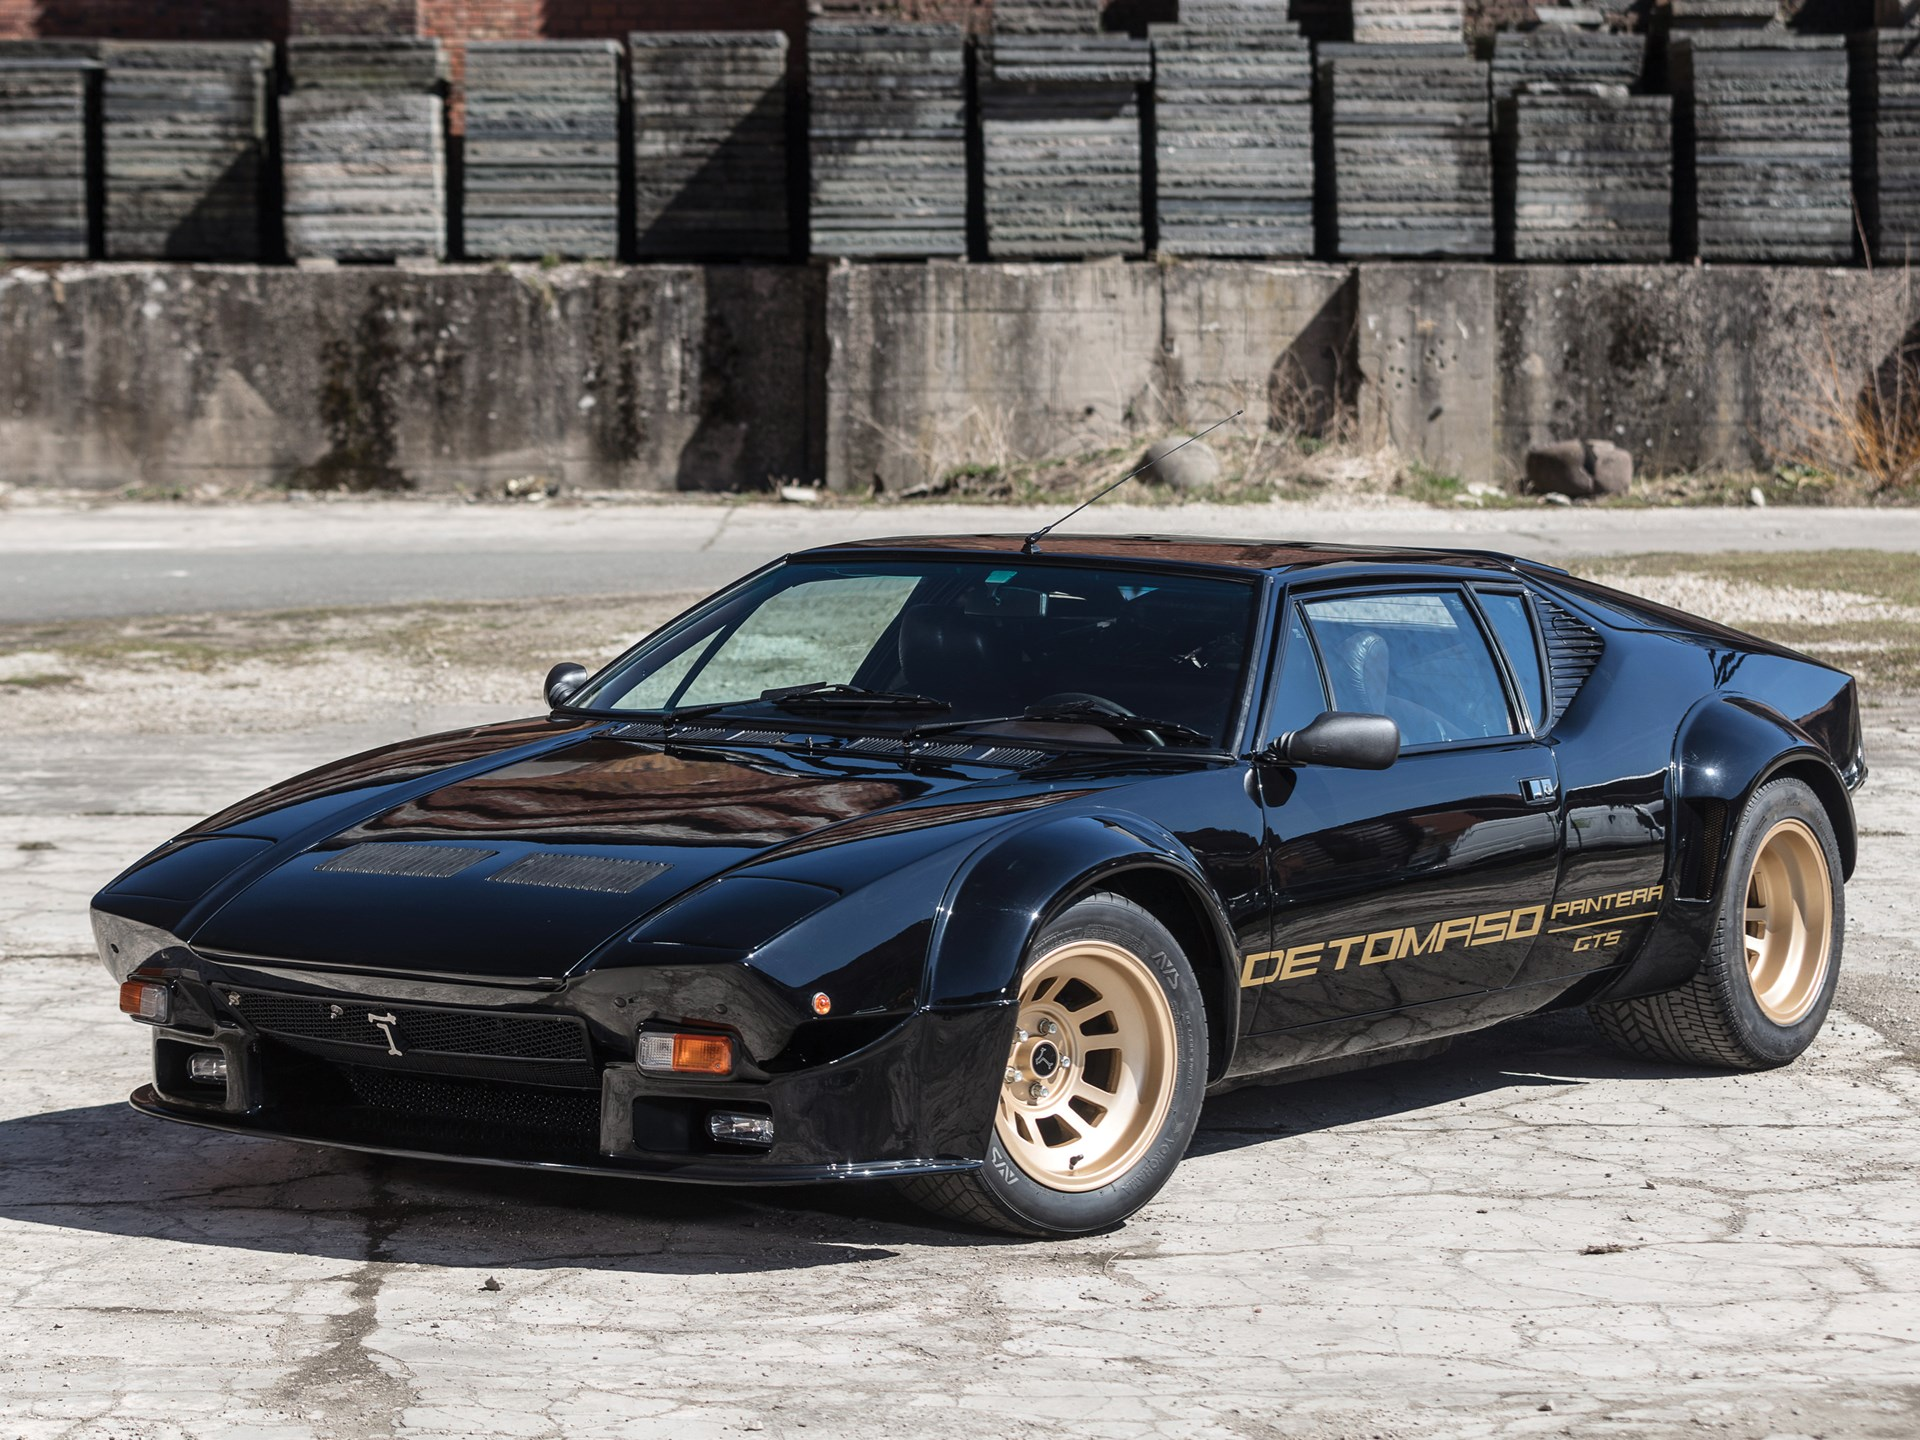 rm sotheby 39 s 1984 de tomaso pantera gt5 monaco 2018. Black Bedroom Furniture Sets. Home Design Ideas